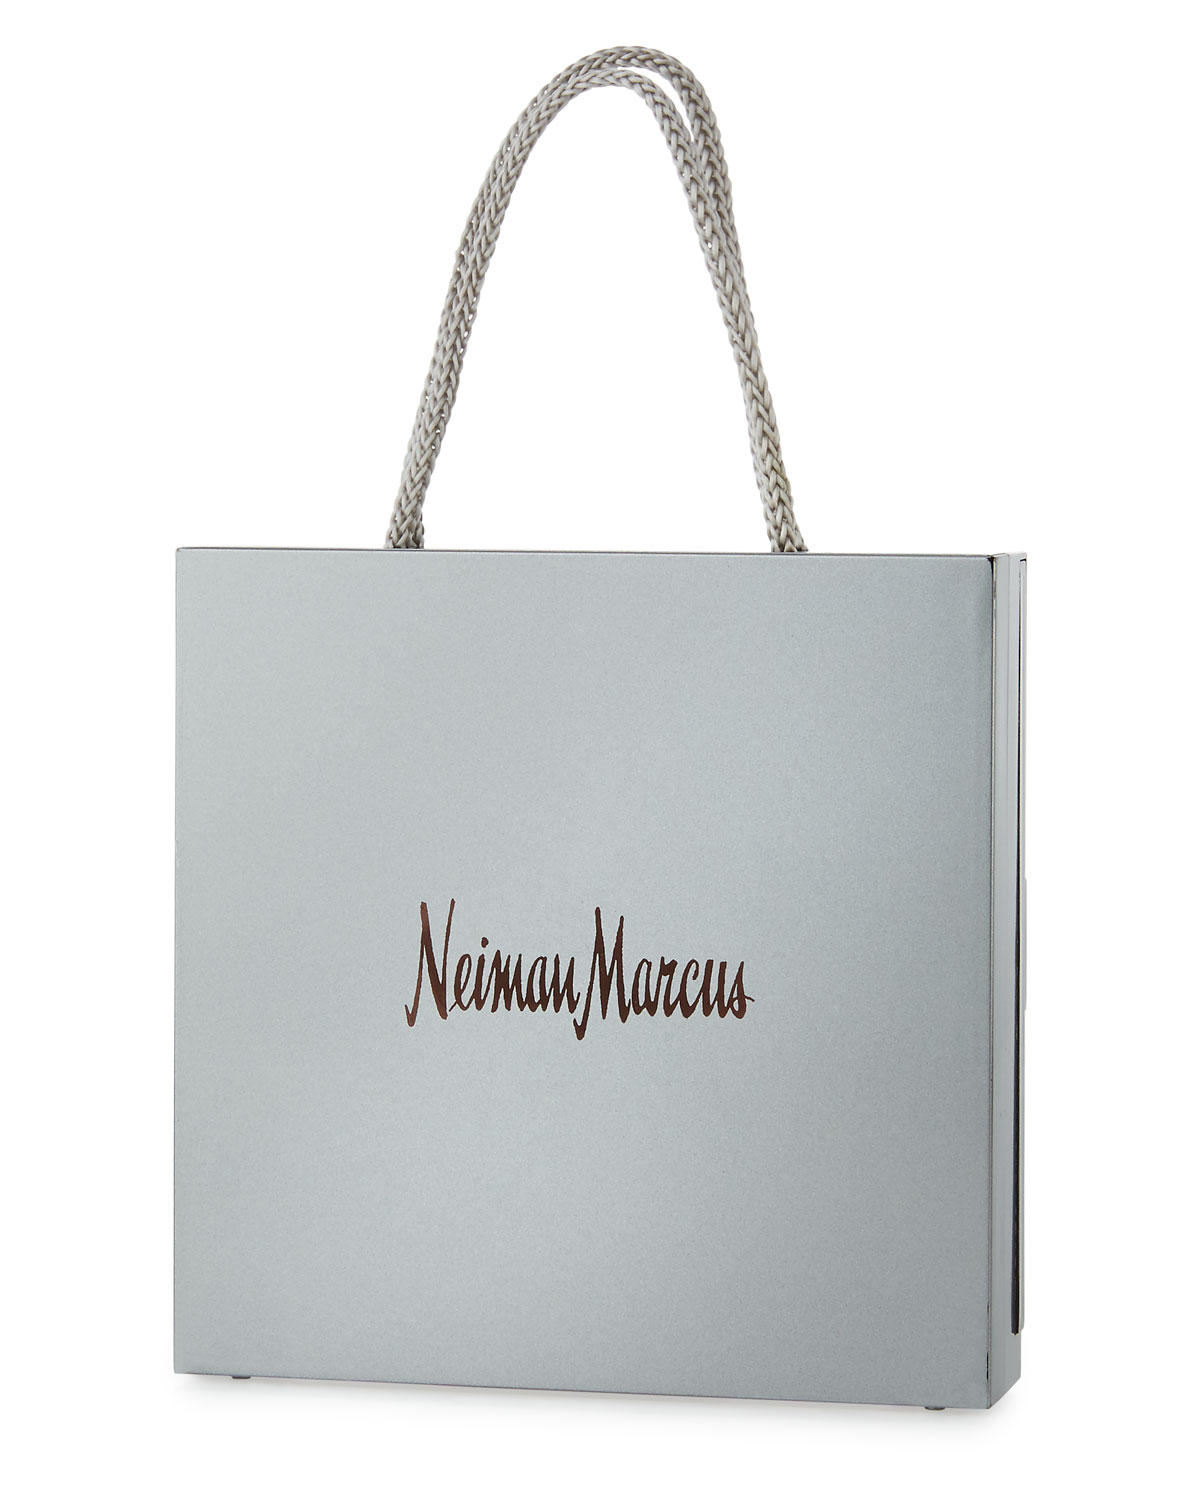 Neiman Marcus The Limited Edition